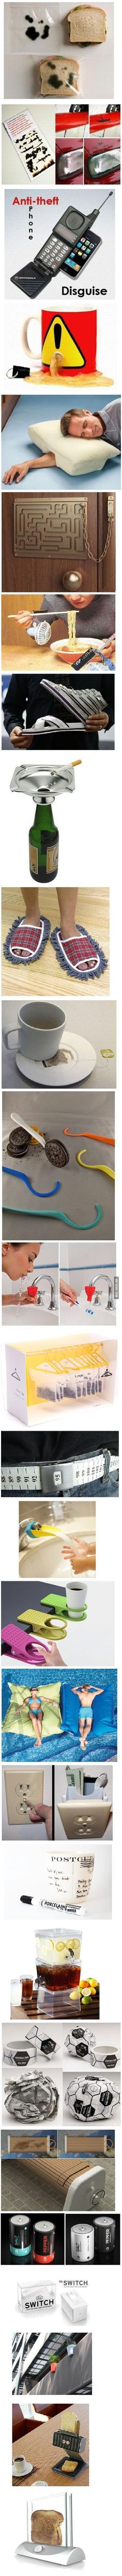 Awesome inventions - 9GAG